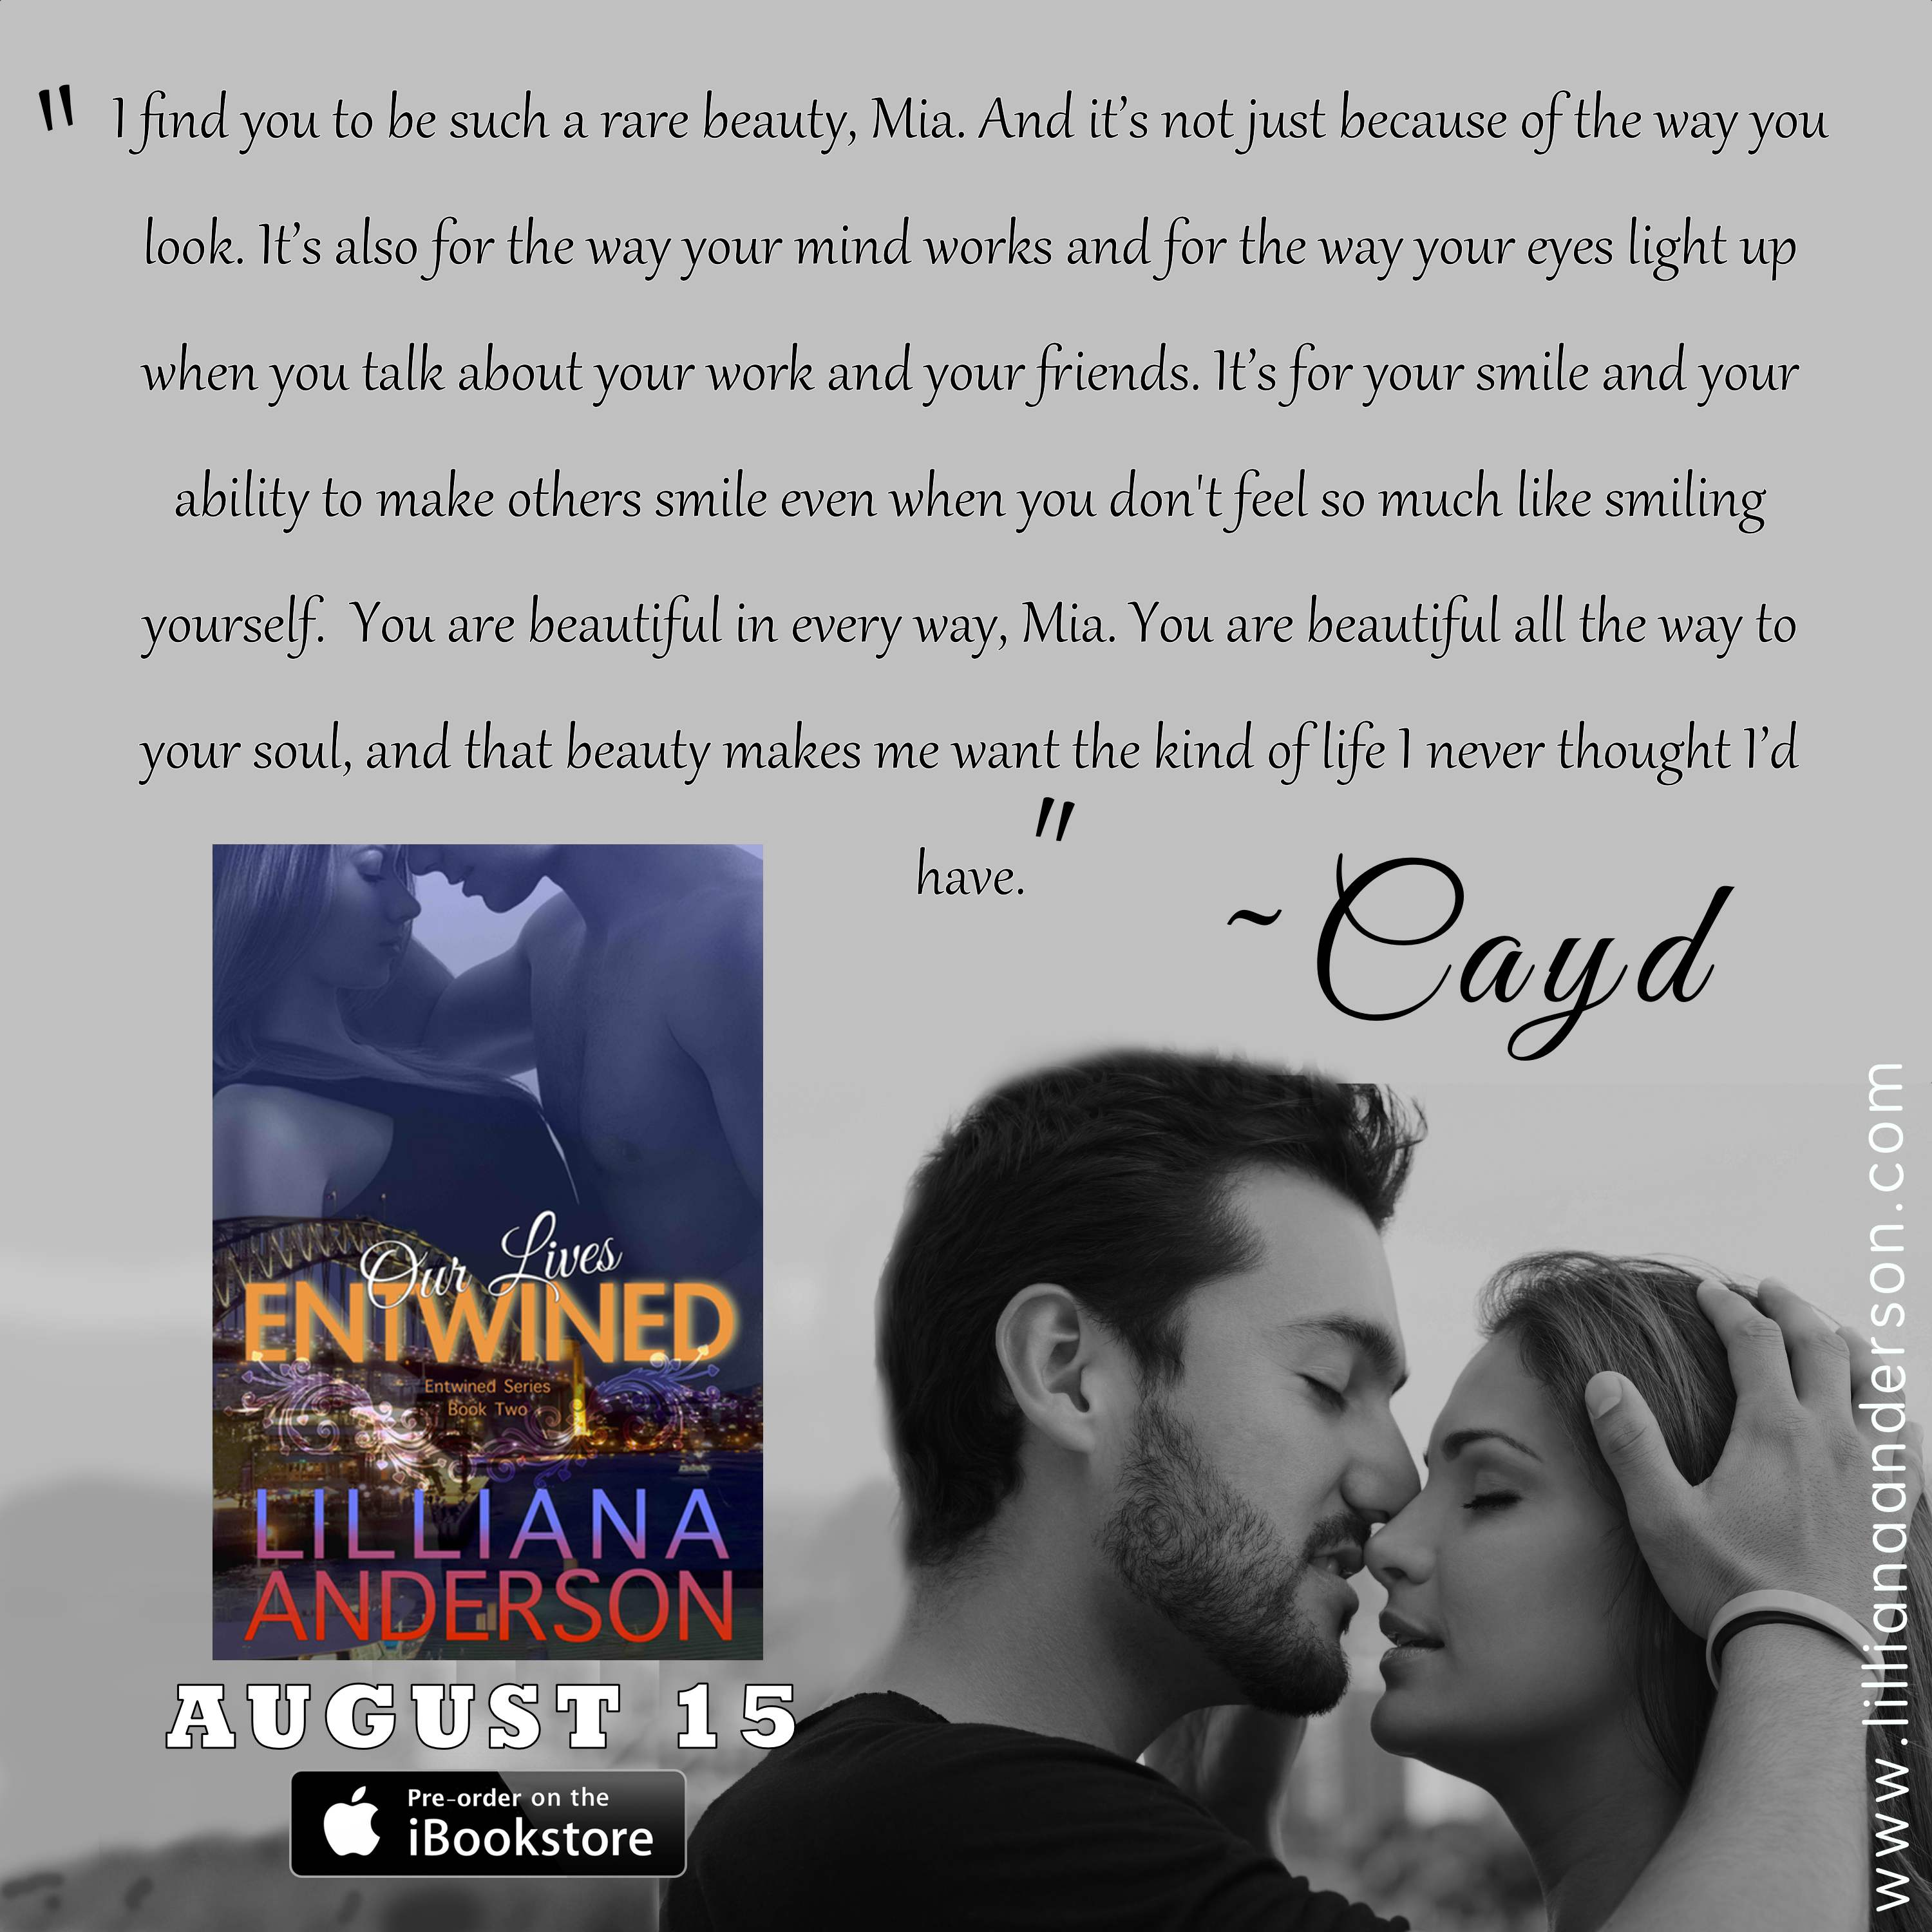 entwined quote teaser - preorder